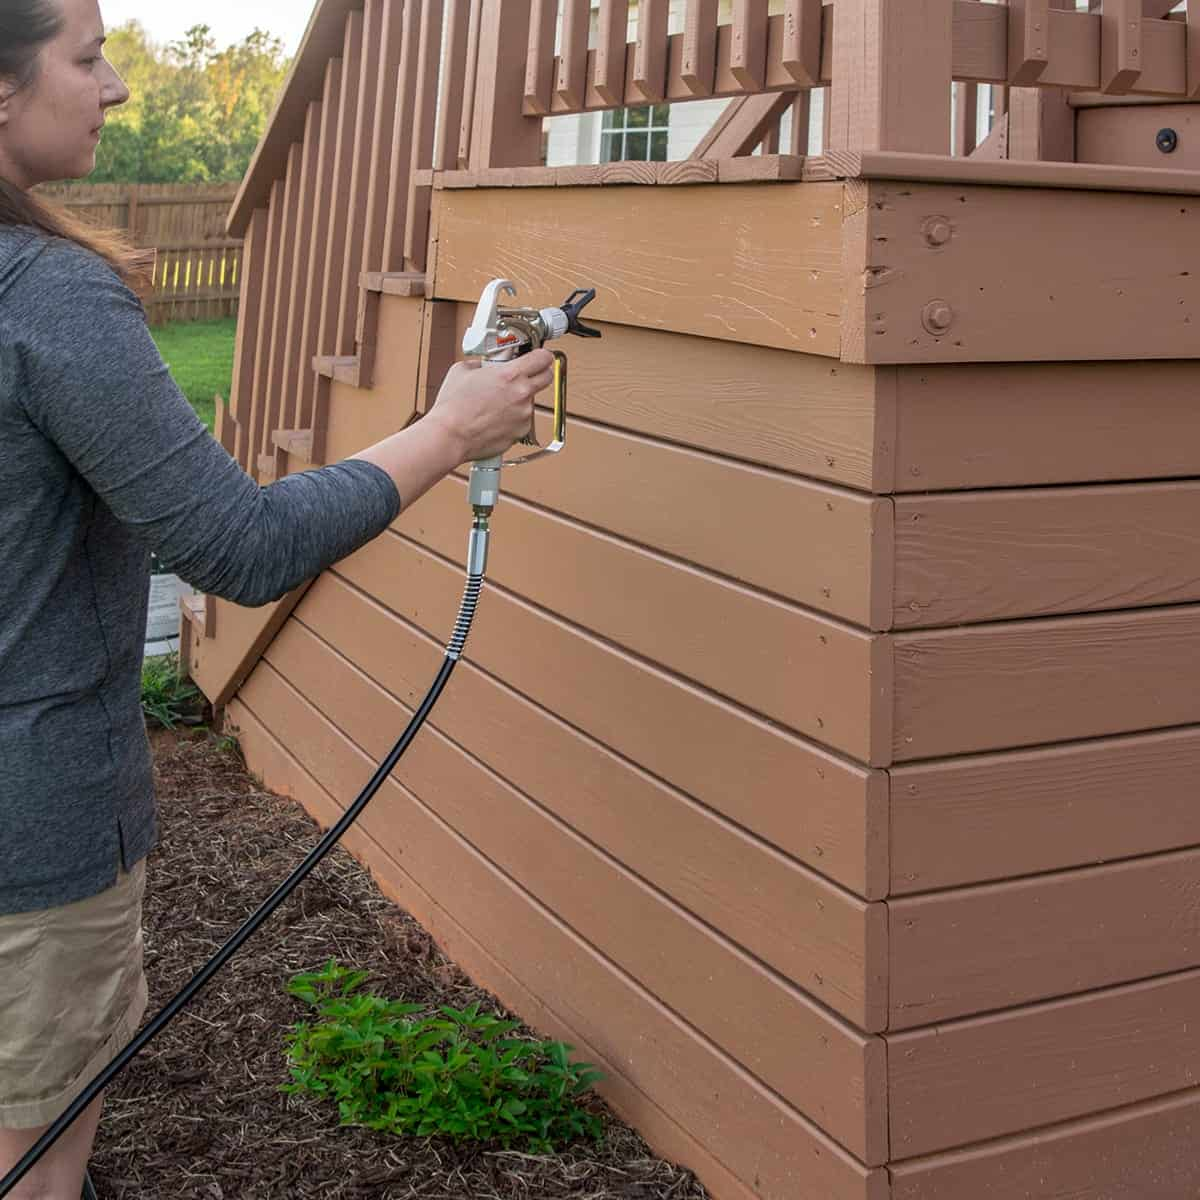 Woman using an airless paint sprayer to paint the wall of a raised deck.